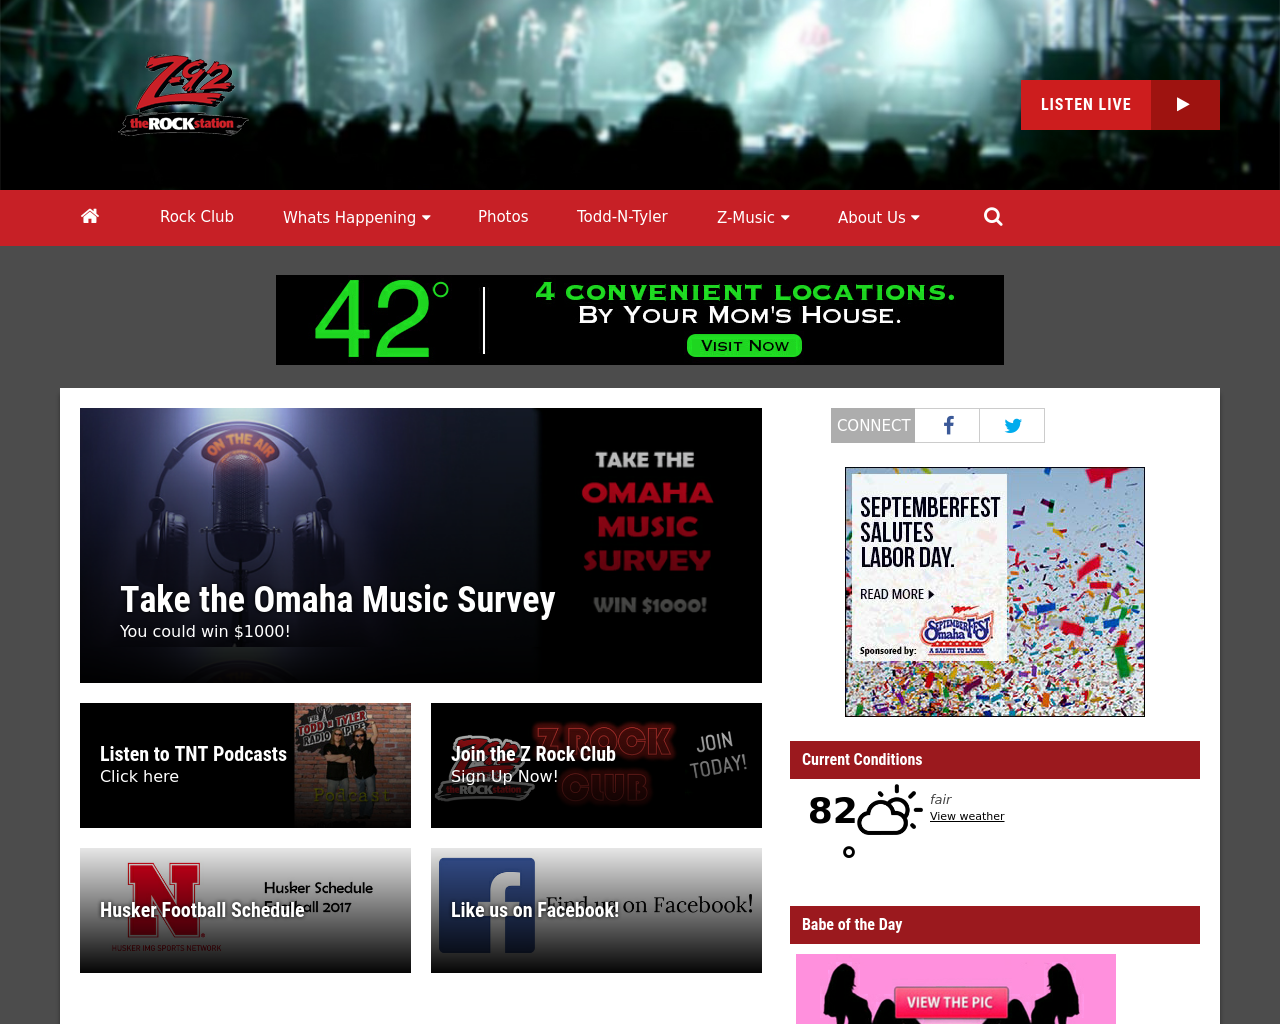 Z92.com-Advertising-Reviews-Pricing